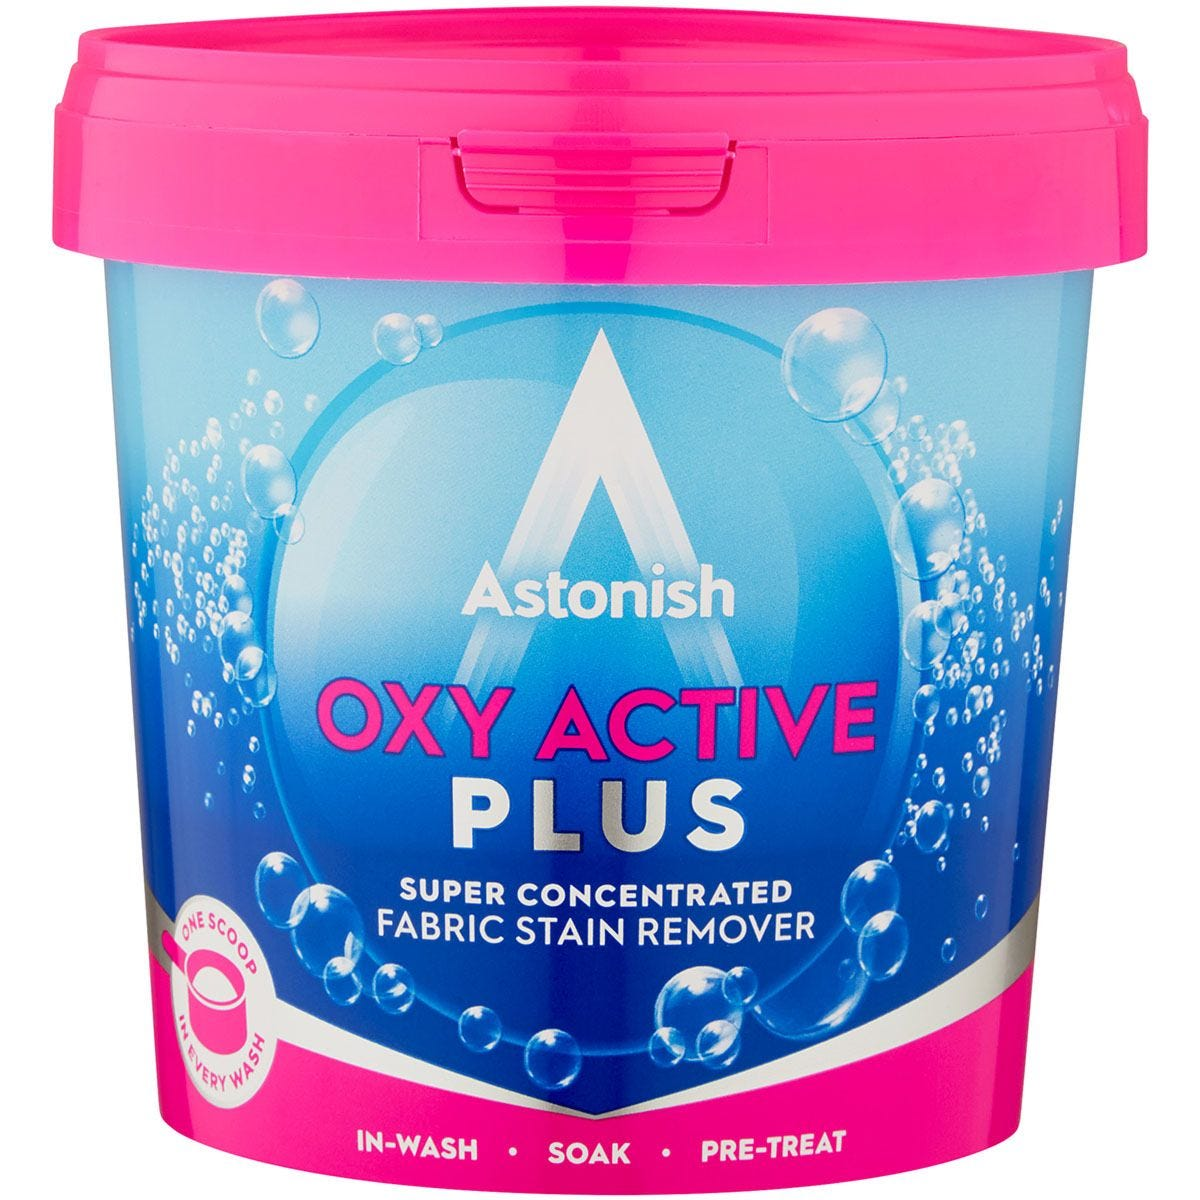 Astonish Oxy Active Plus Fabric Stain Remover Robert Dyas